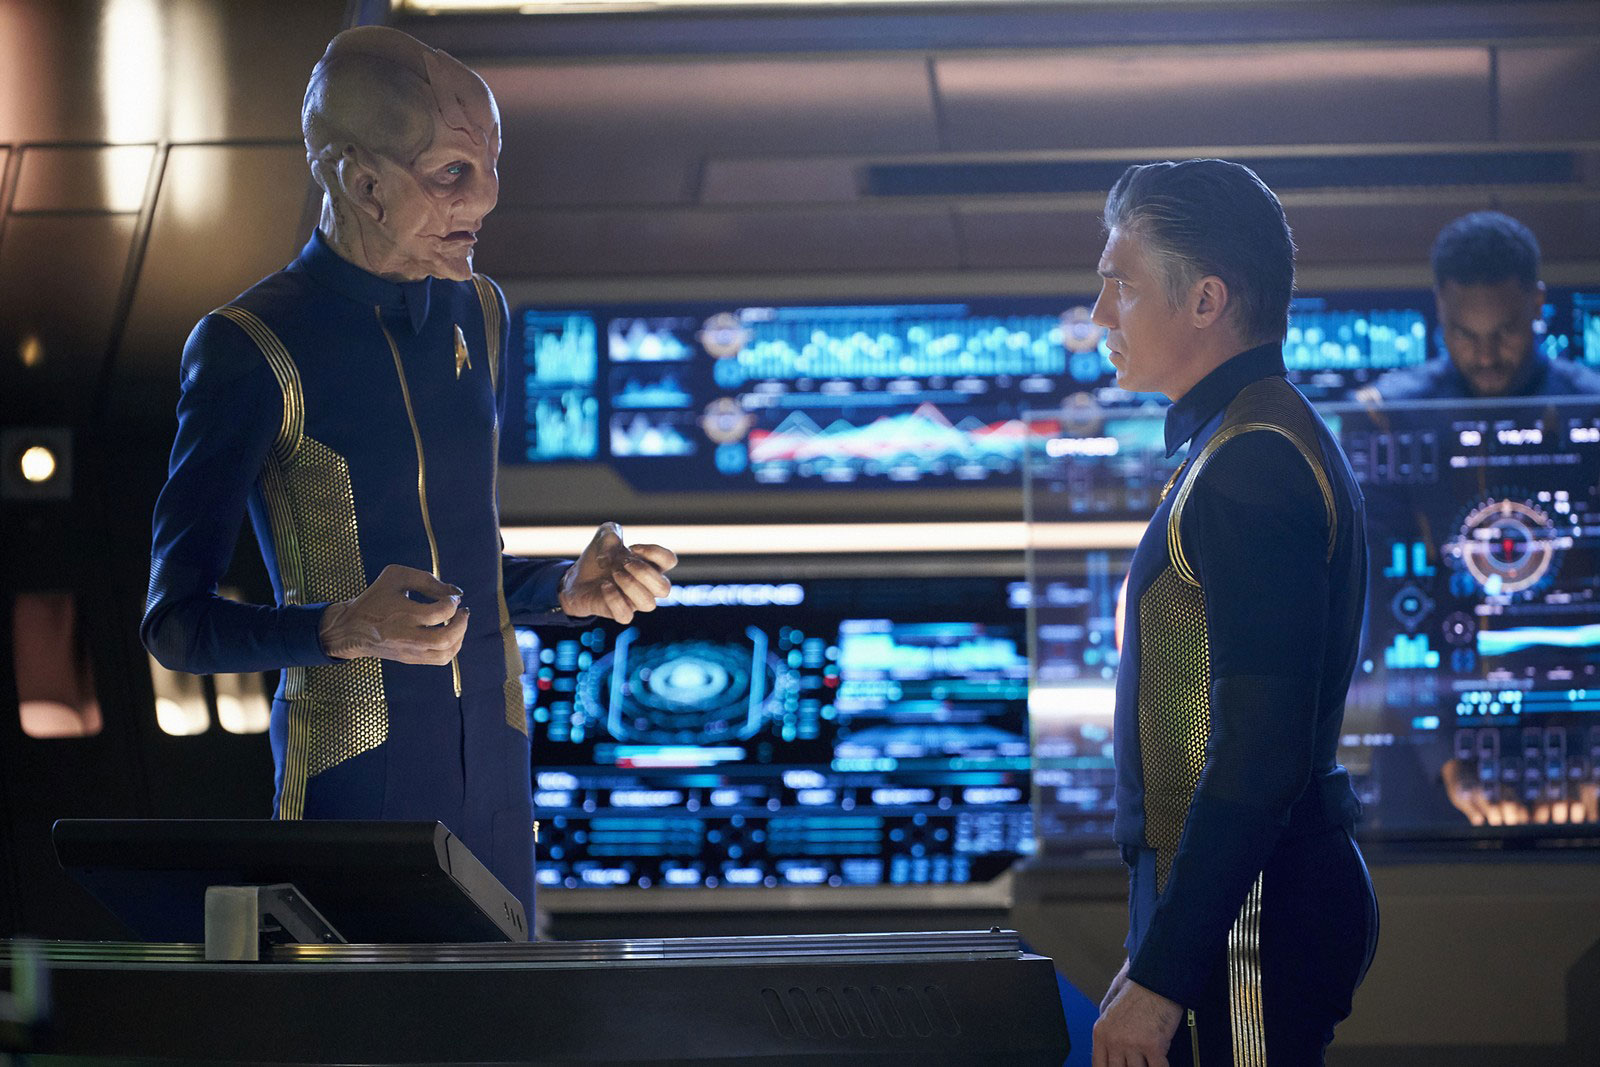 Doug Jones as Saru and Anson Mount as Captain Christopher Pike